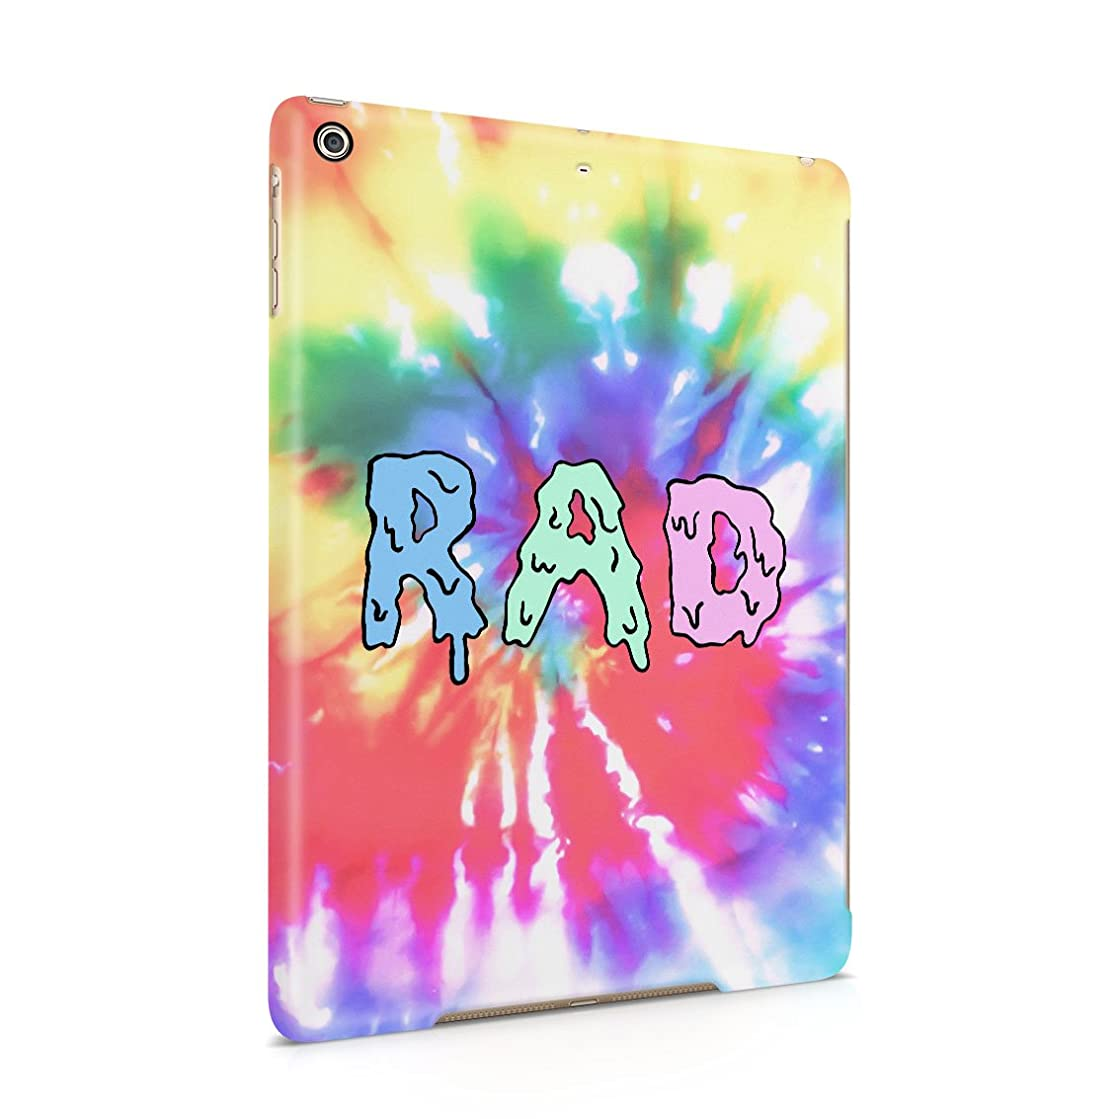 Melting Colourful RAD Trippy Acid Tie Dye Plastic Tablet Snap On Back Cover Shell For iPad Air